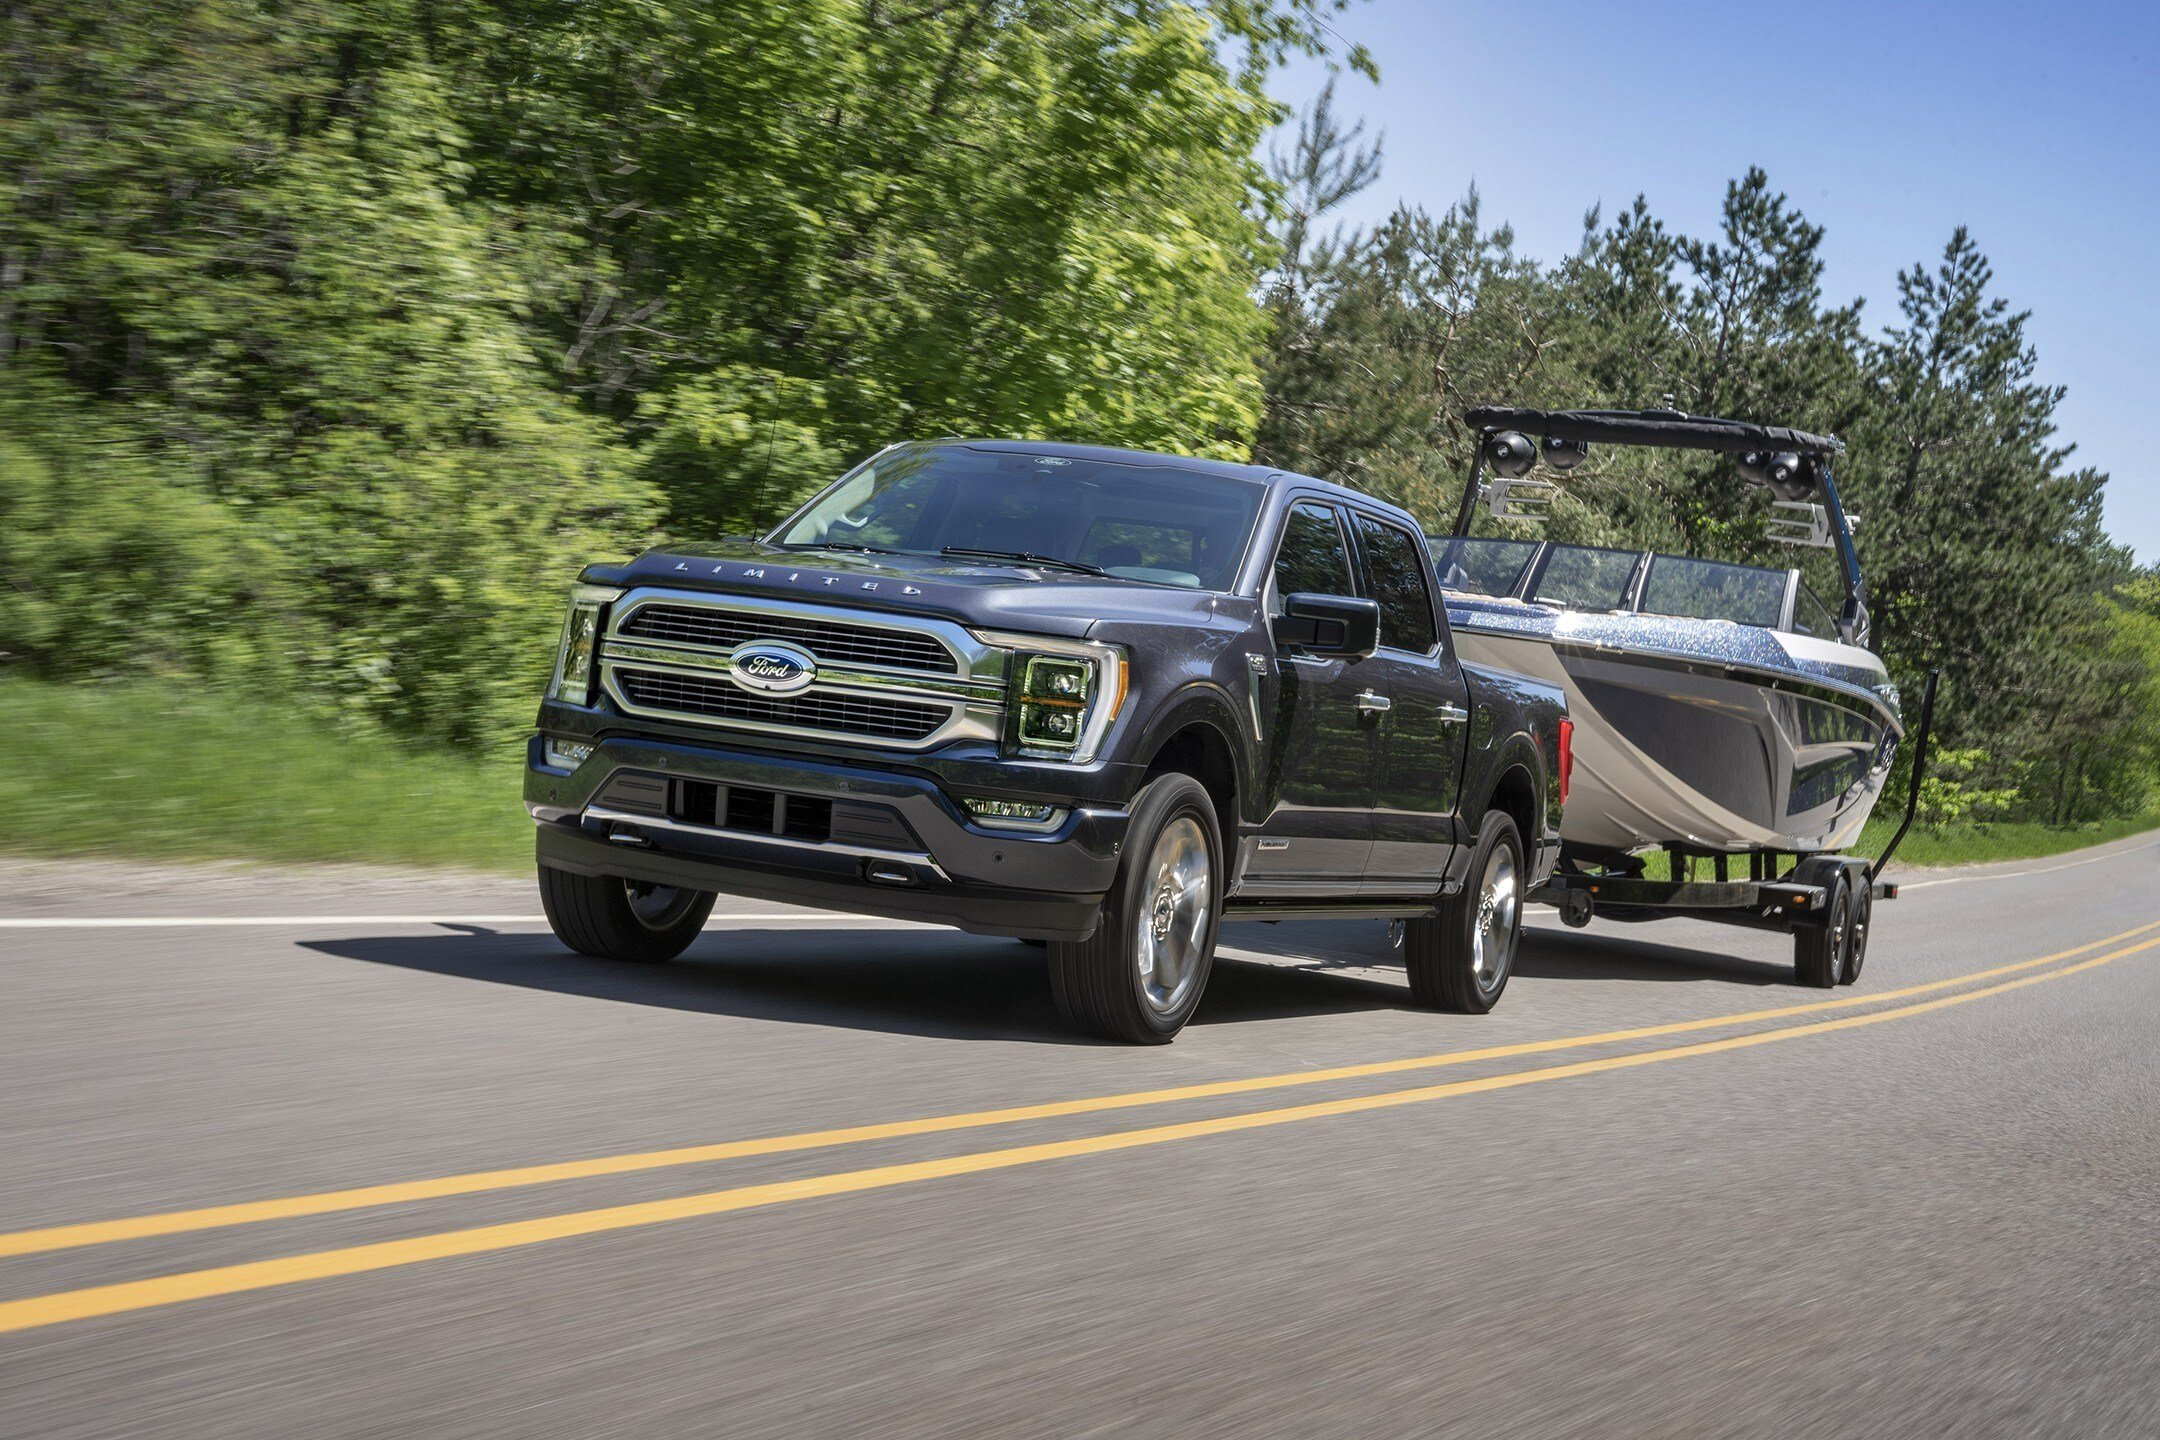 How Much Can A Ford F-150 Tow?